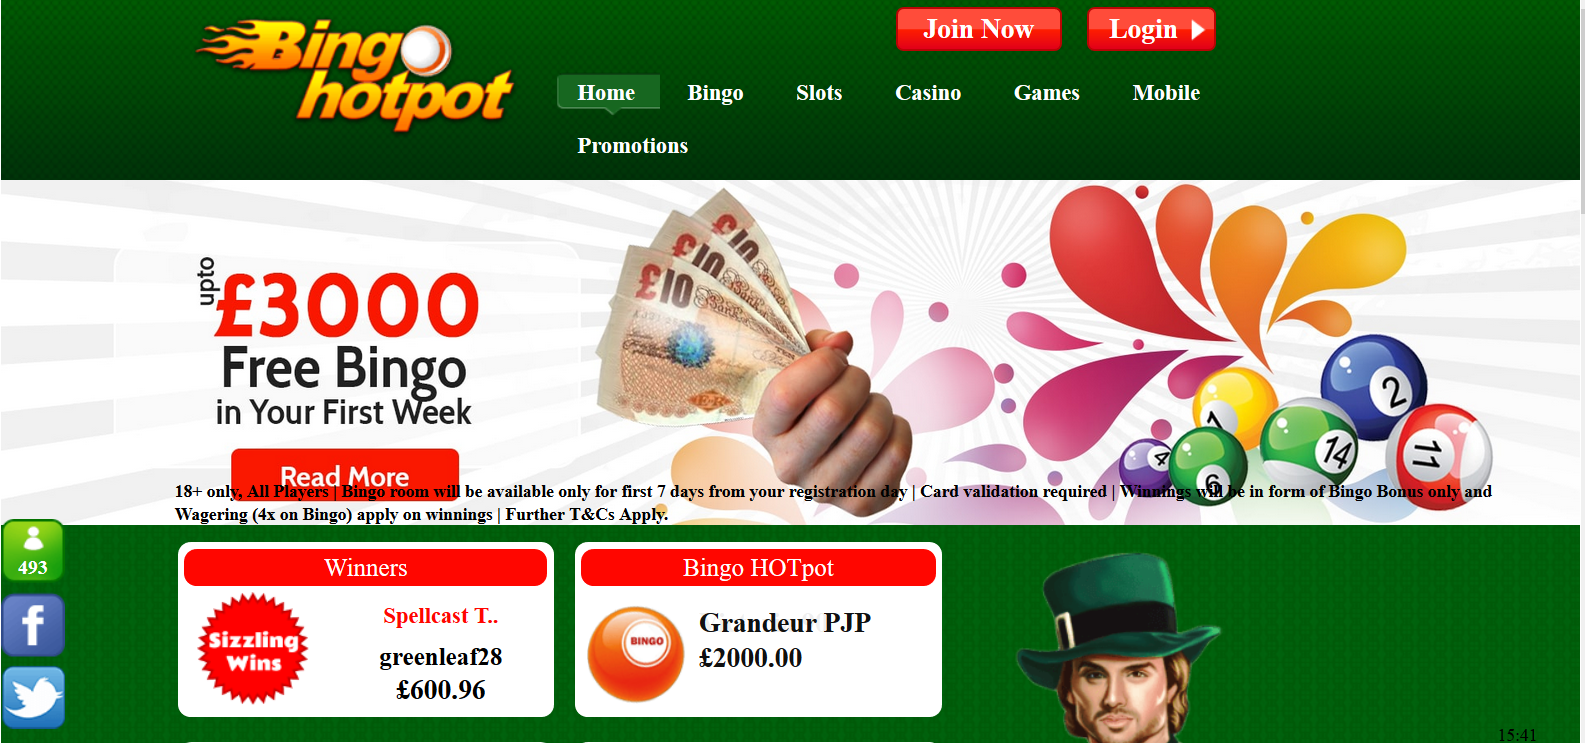 UK Bingo and Casino Games - Bingo Hotpot